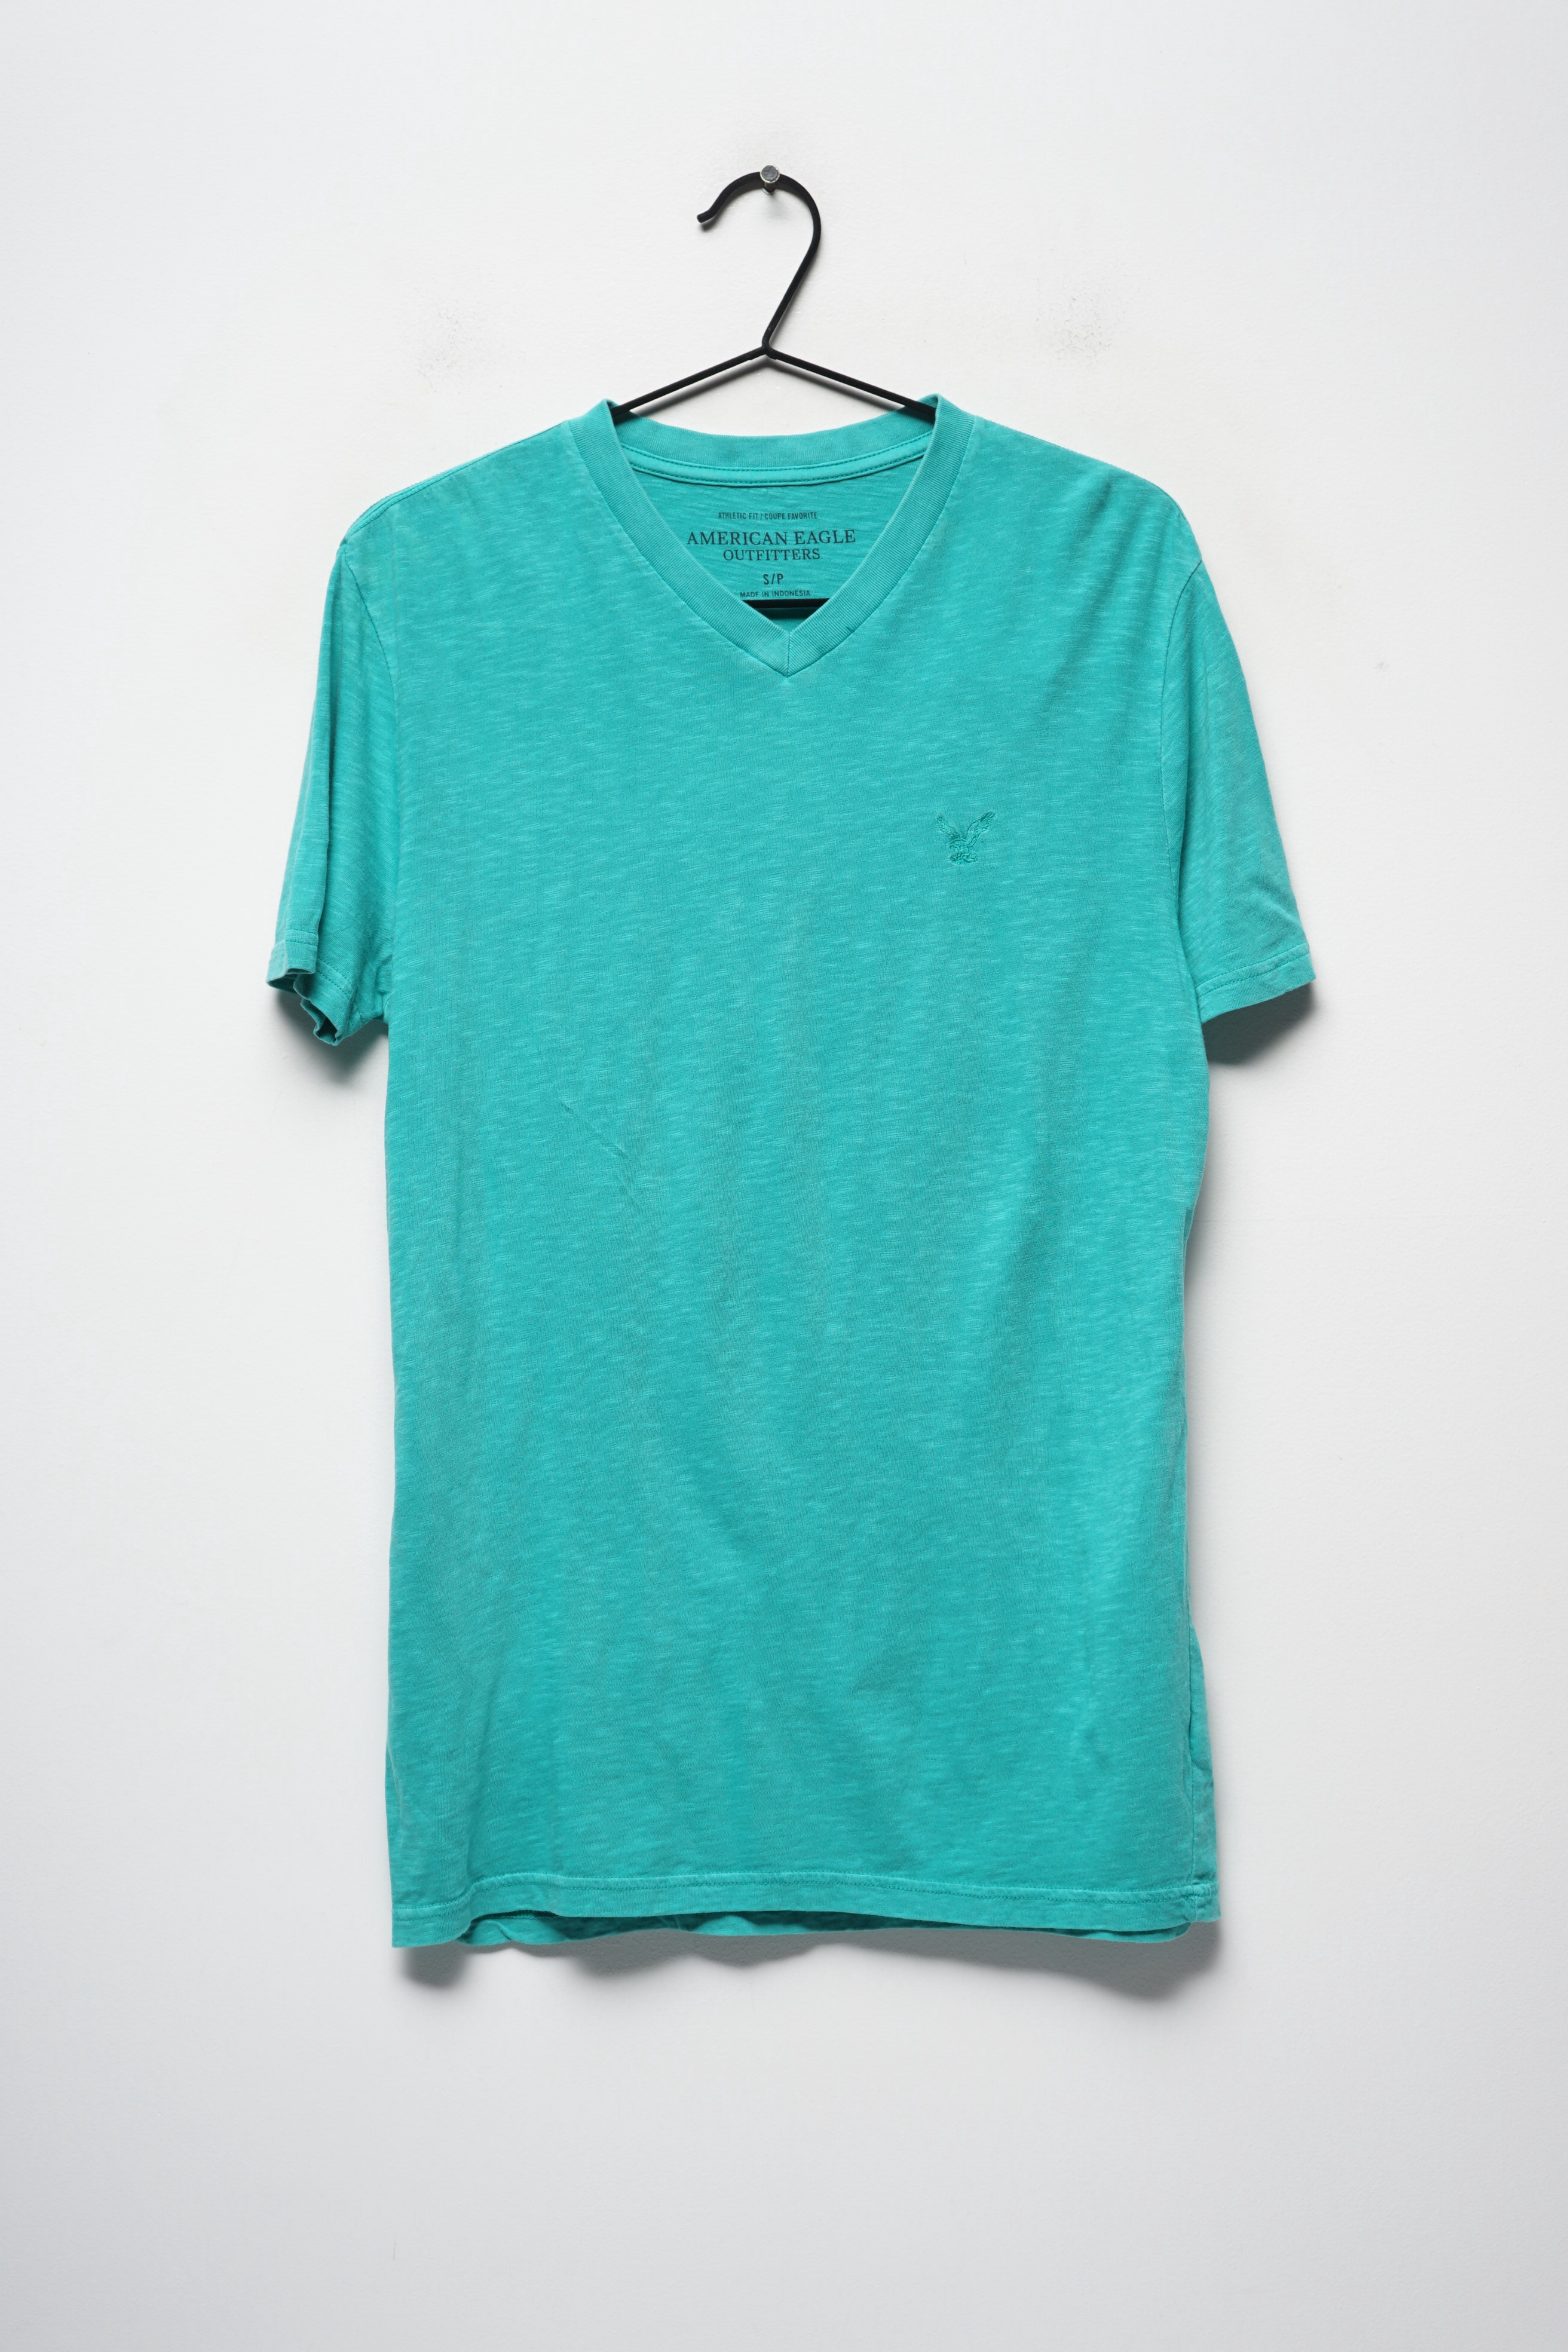 American Eagle Outfitters T-Shirt Grün Gr.S